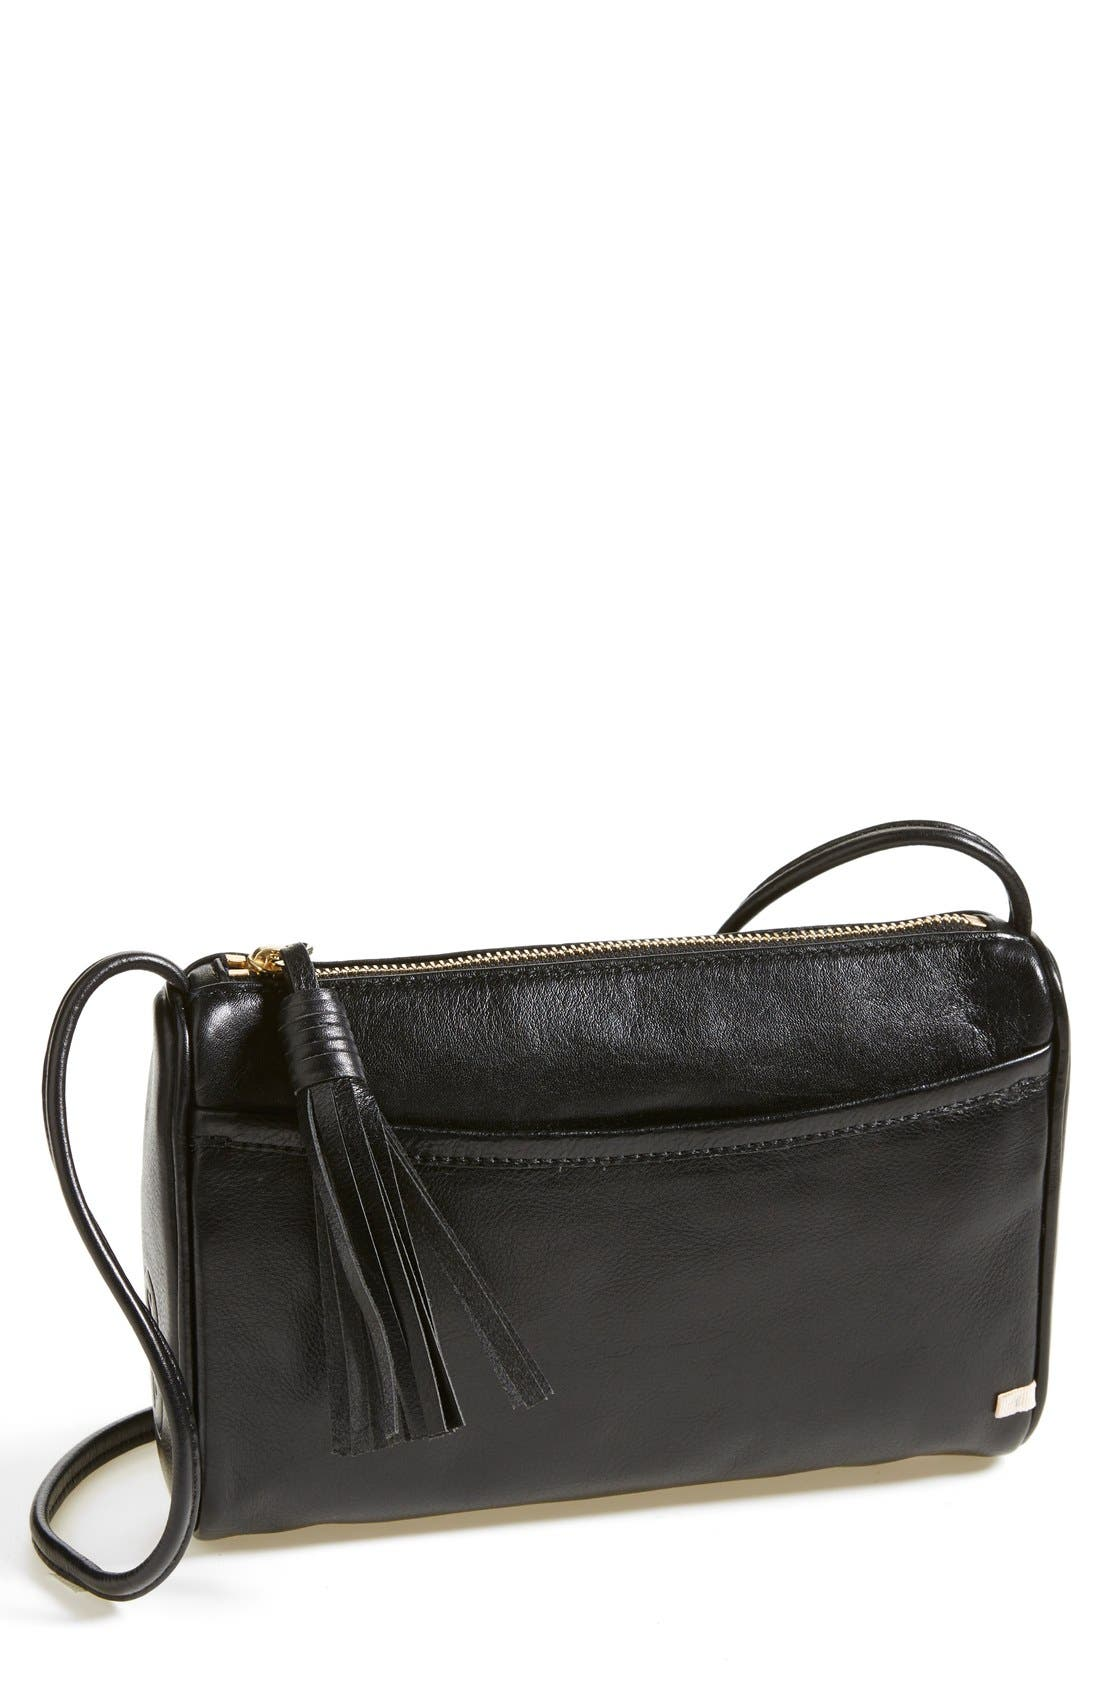 Main Image - SJP 'Crosstown' Crossbody Bag